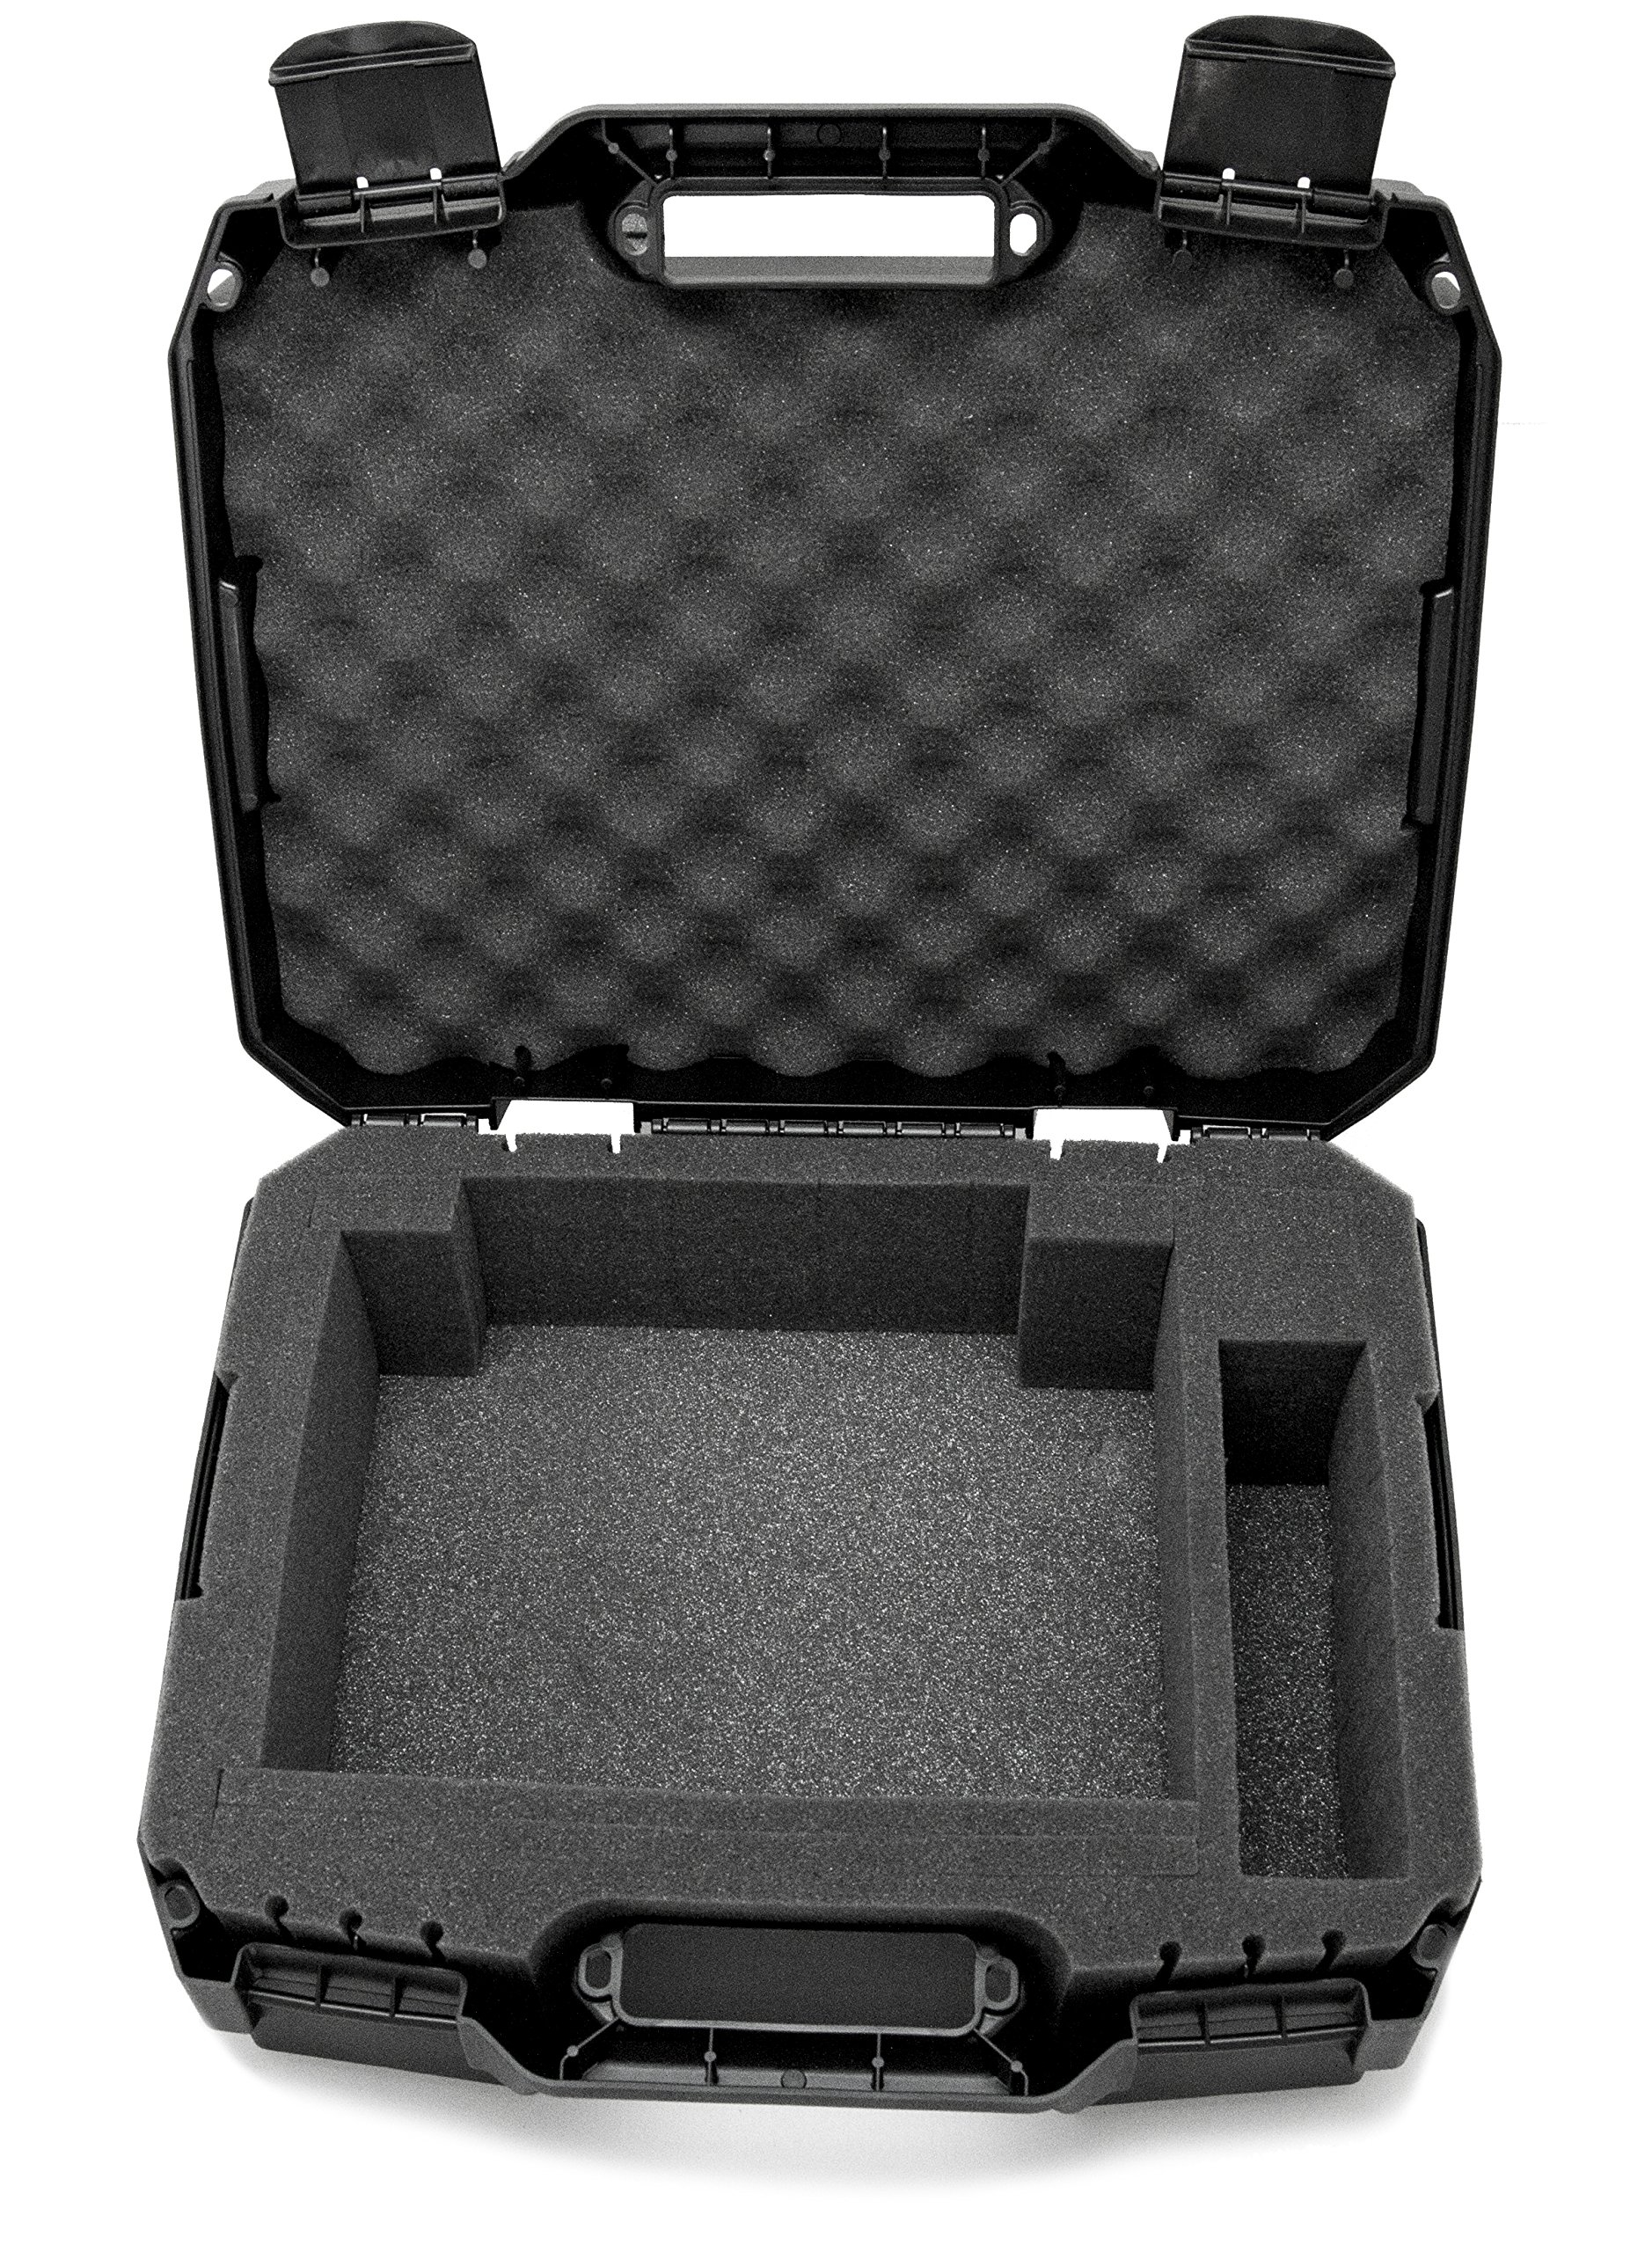 CASEMATIX Projector Travel Case Designed For Viewsonic PA503S / PA503W / PA503X / PG703W / PG703 WXGA XGA SVGA Projectors , HDMI Cable and Remote - Custom Foam Compartment and Hard Shell Protection